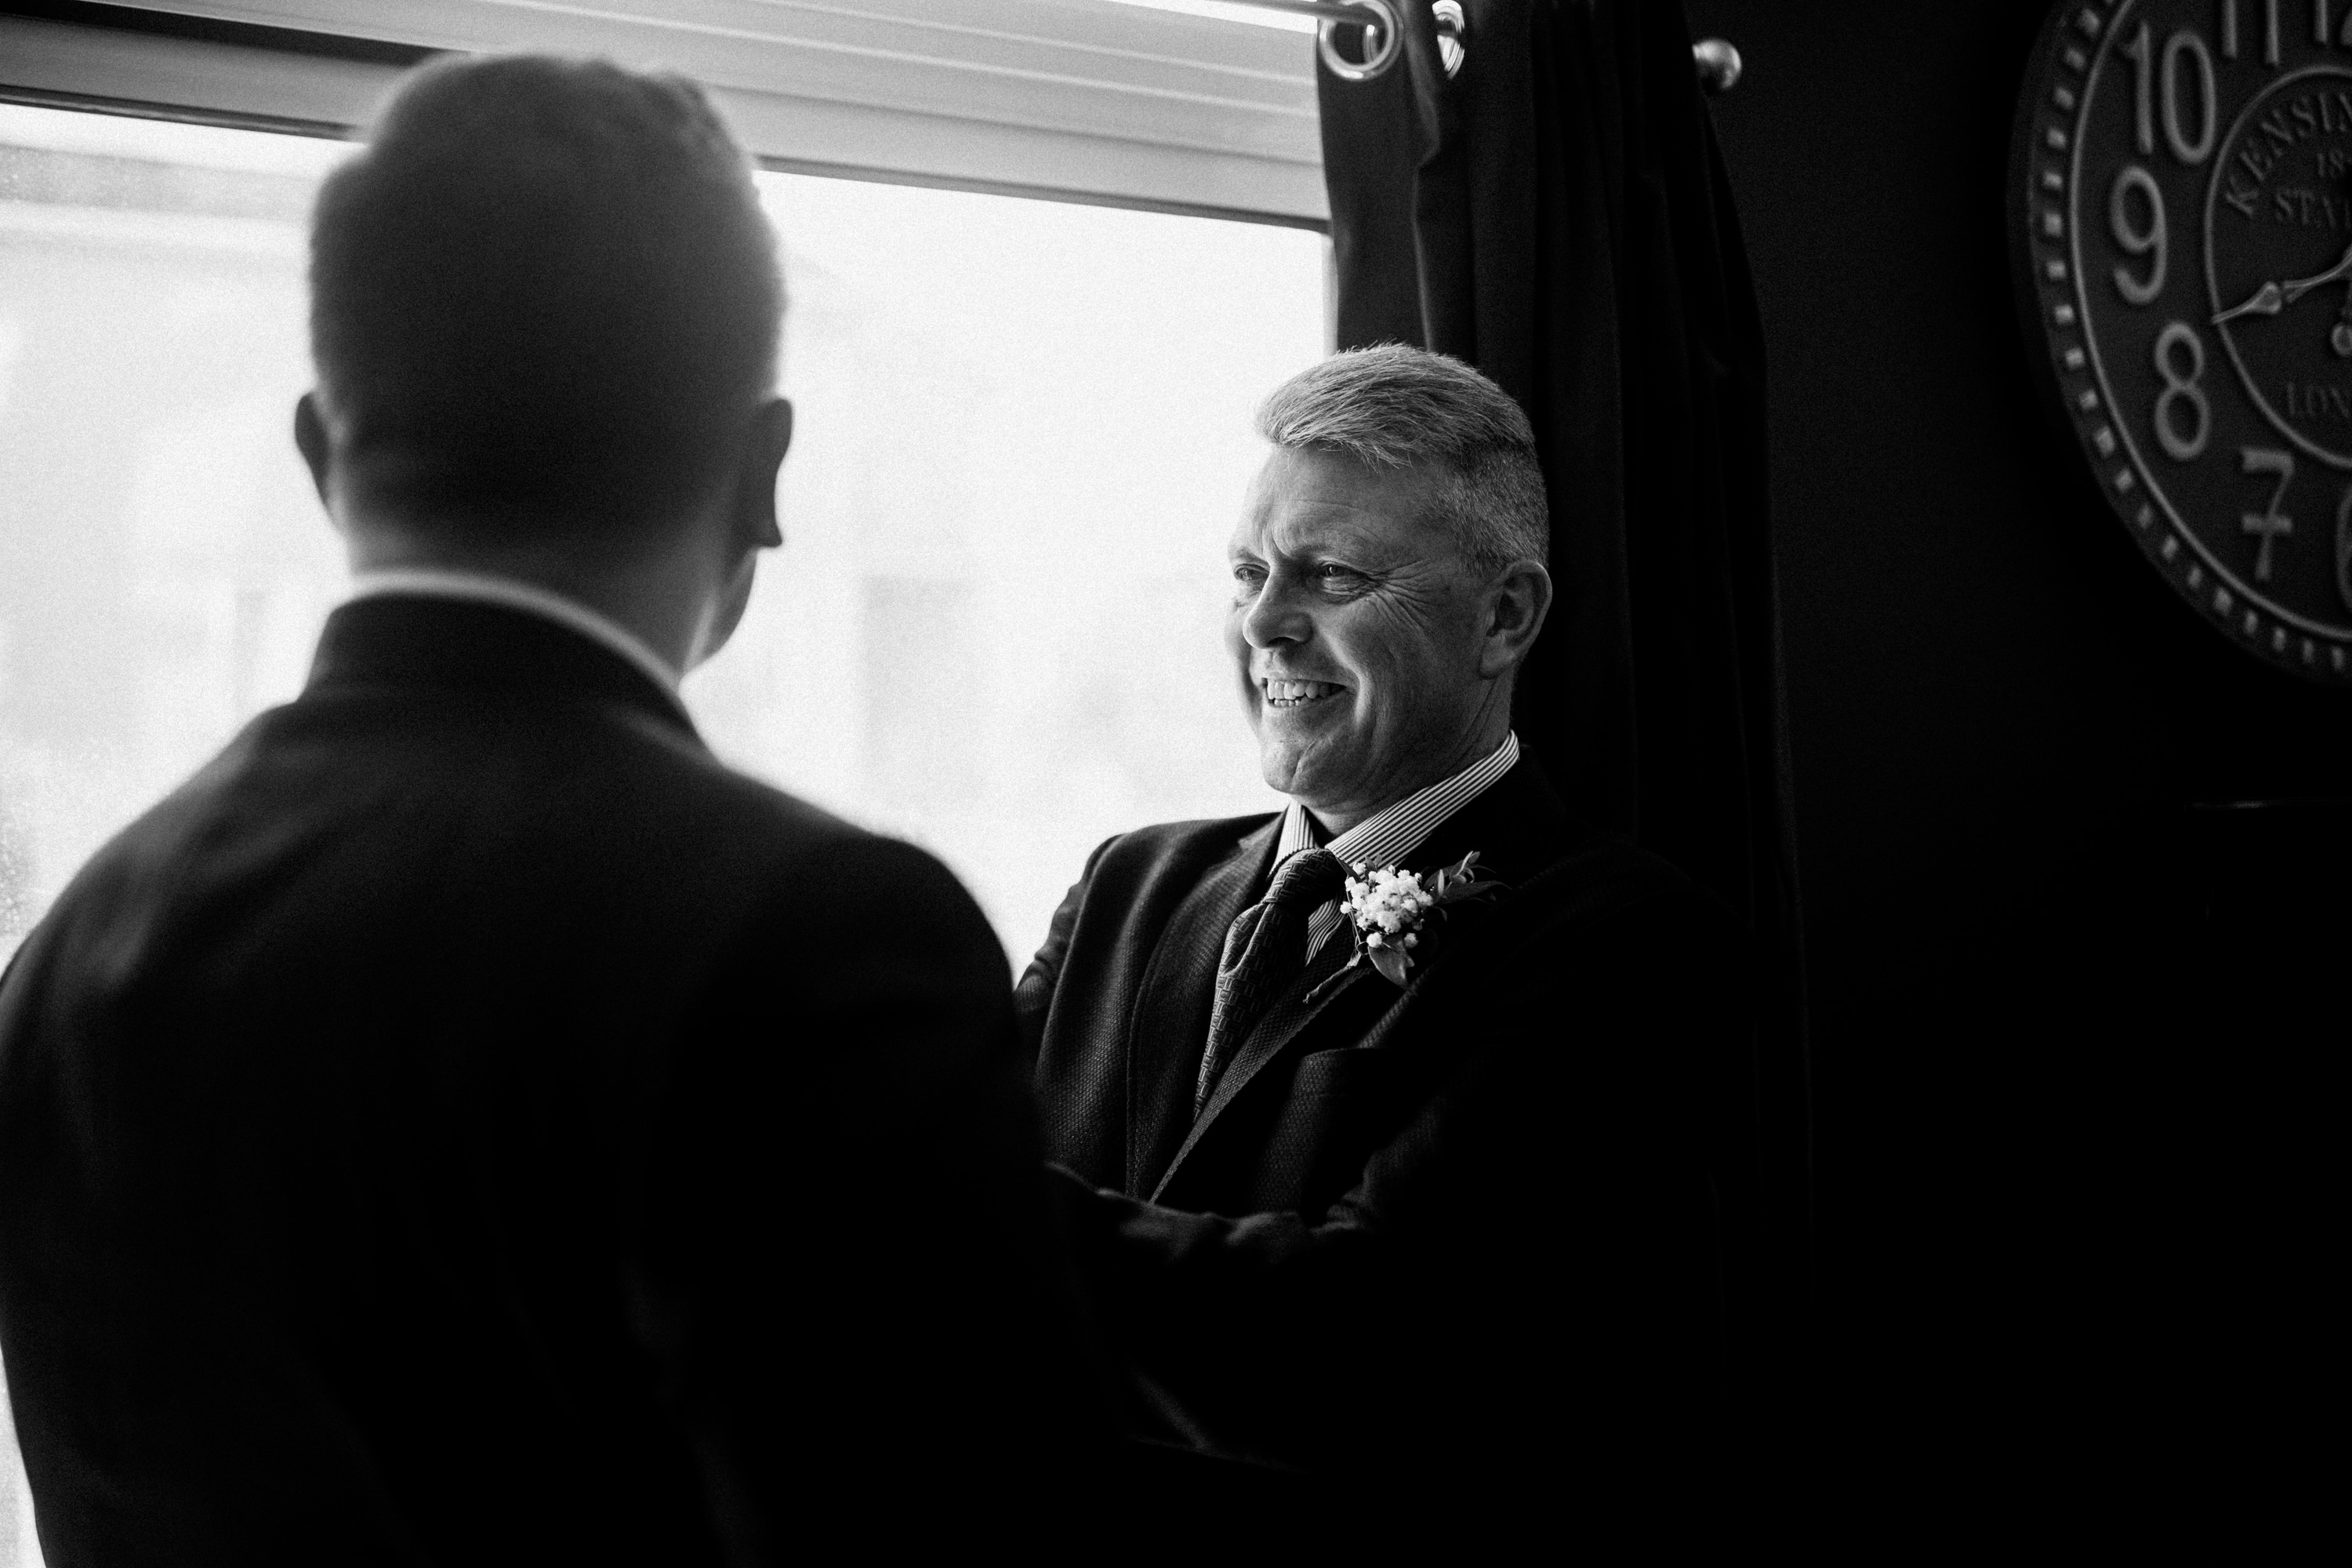 proud father looking at groom